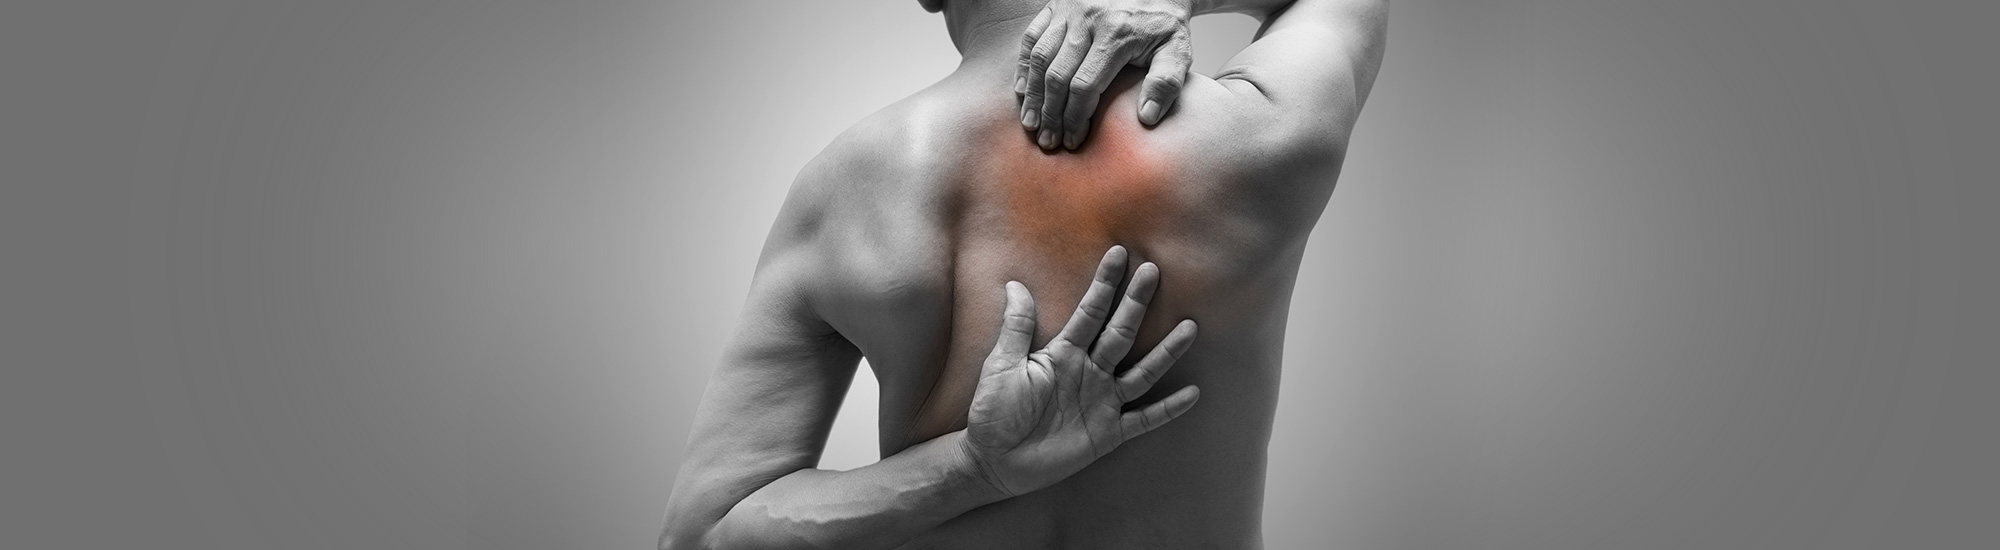 Ayurvedic treatment for Myofascial Pain Causes